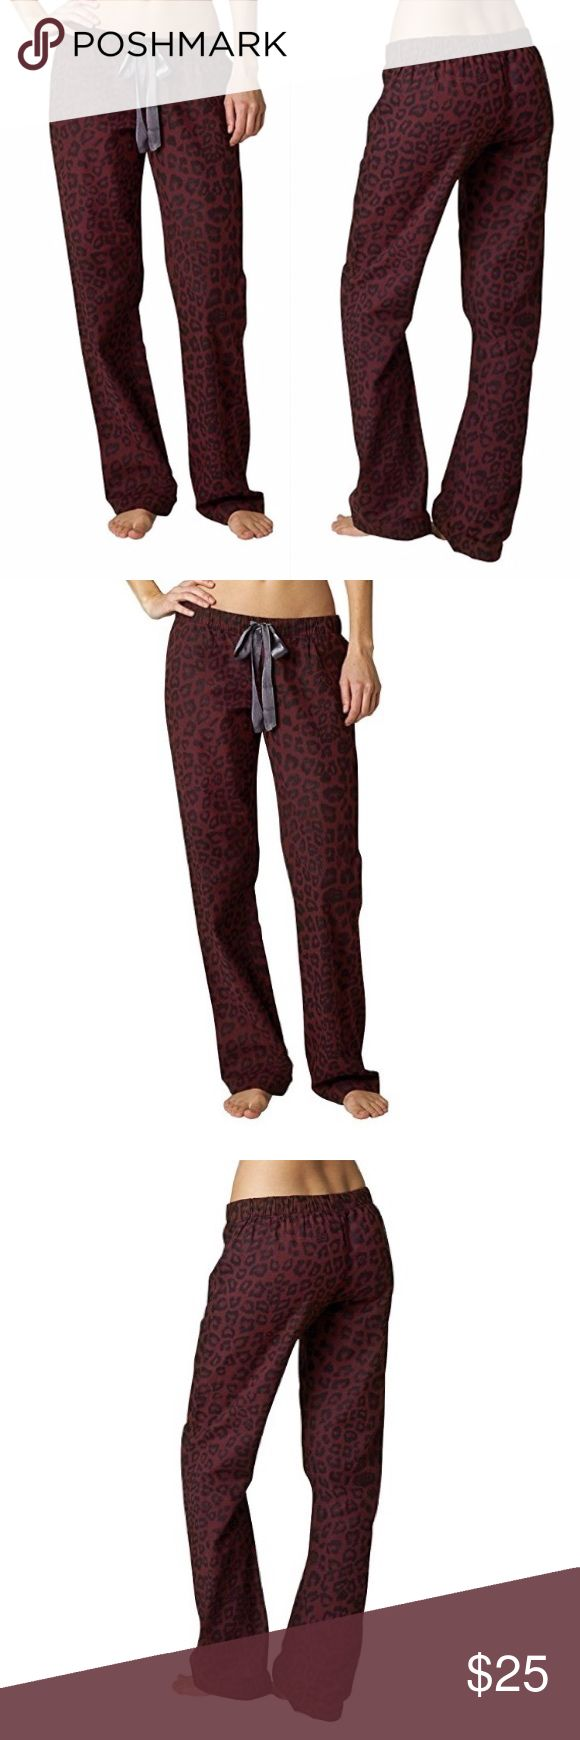 Fox Racing Cordova Pajama Pant Small Fox Racing is a leading manufacturer of Sportswear and Off-Road gear Offering high quality t-shirts, tee, tanks and tops for women and wowomen. While Fox Racing offers its complete line of motocross pants, Body Armor, gloves, boots, and Apparels through independent motorcycle accessory dealers worldwide, the company also offers a full line of sportswear.  100% Cotton Flannel Twill 145 g/m2 All over logo cheetah print Elastic tunneled in WB with poly satin…